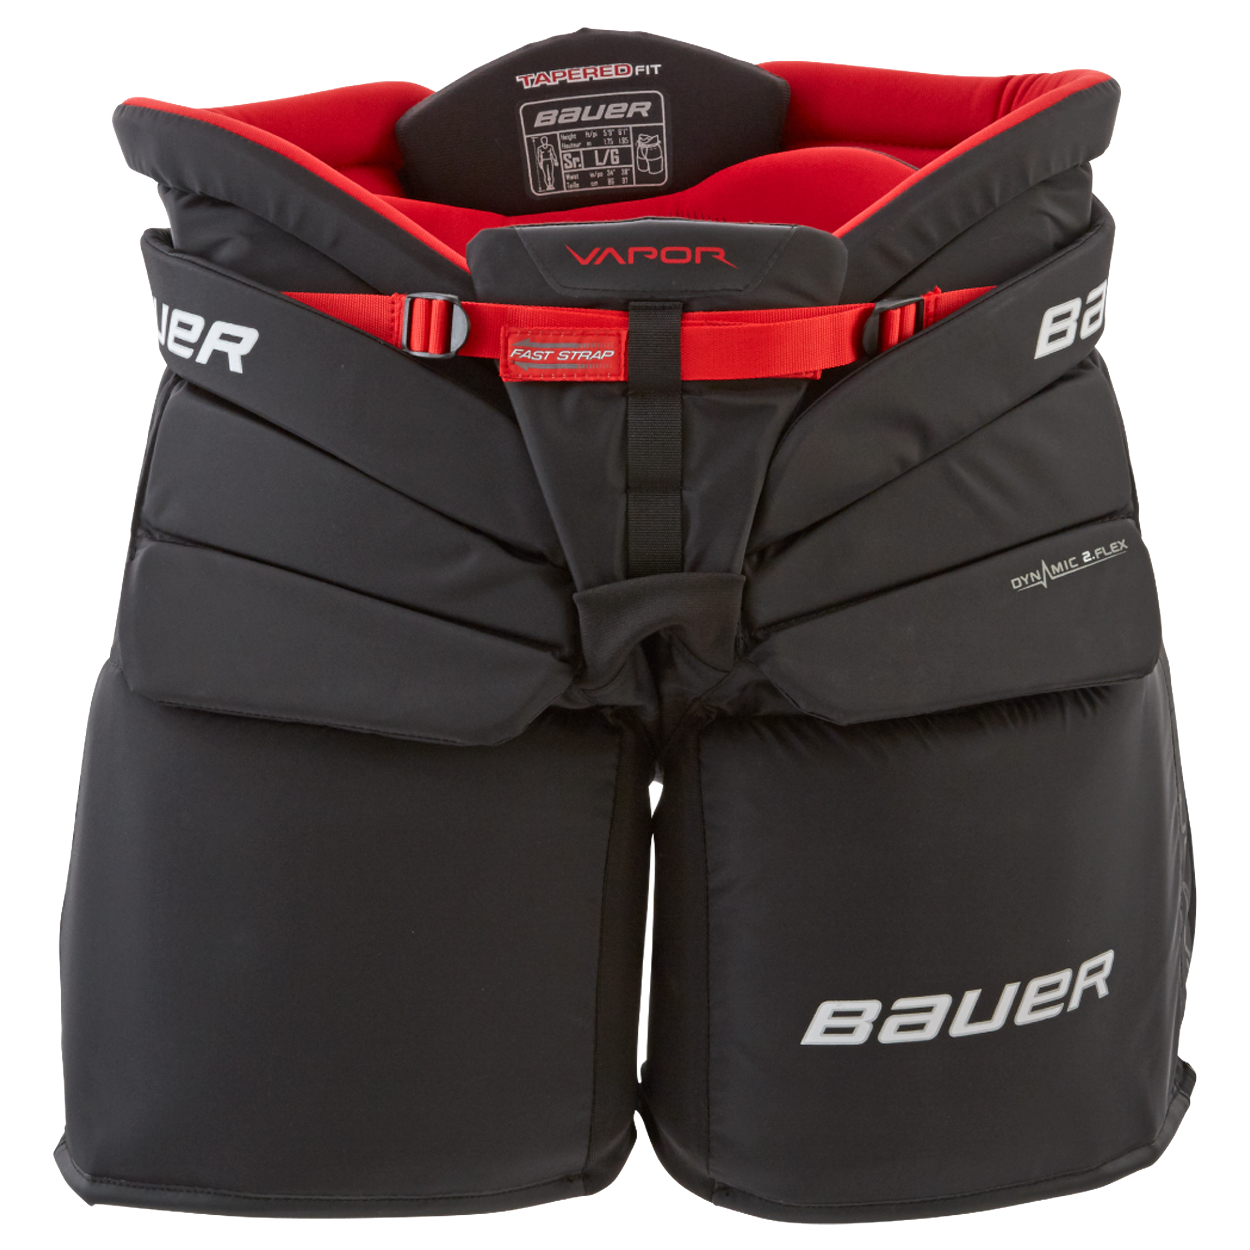 Vapor X2.9 Goalie Pant Intermediate